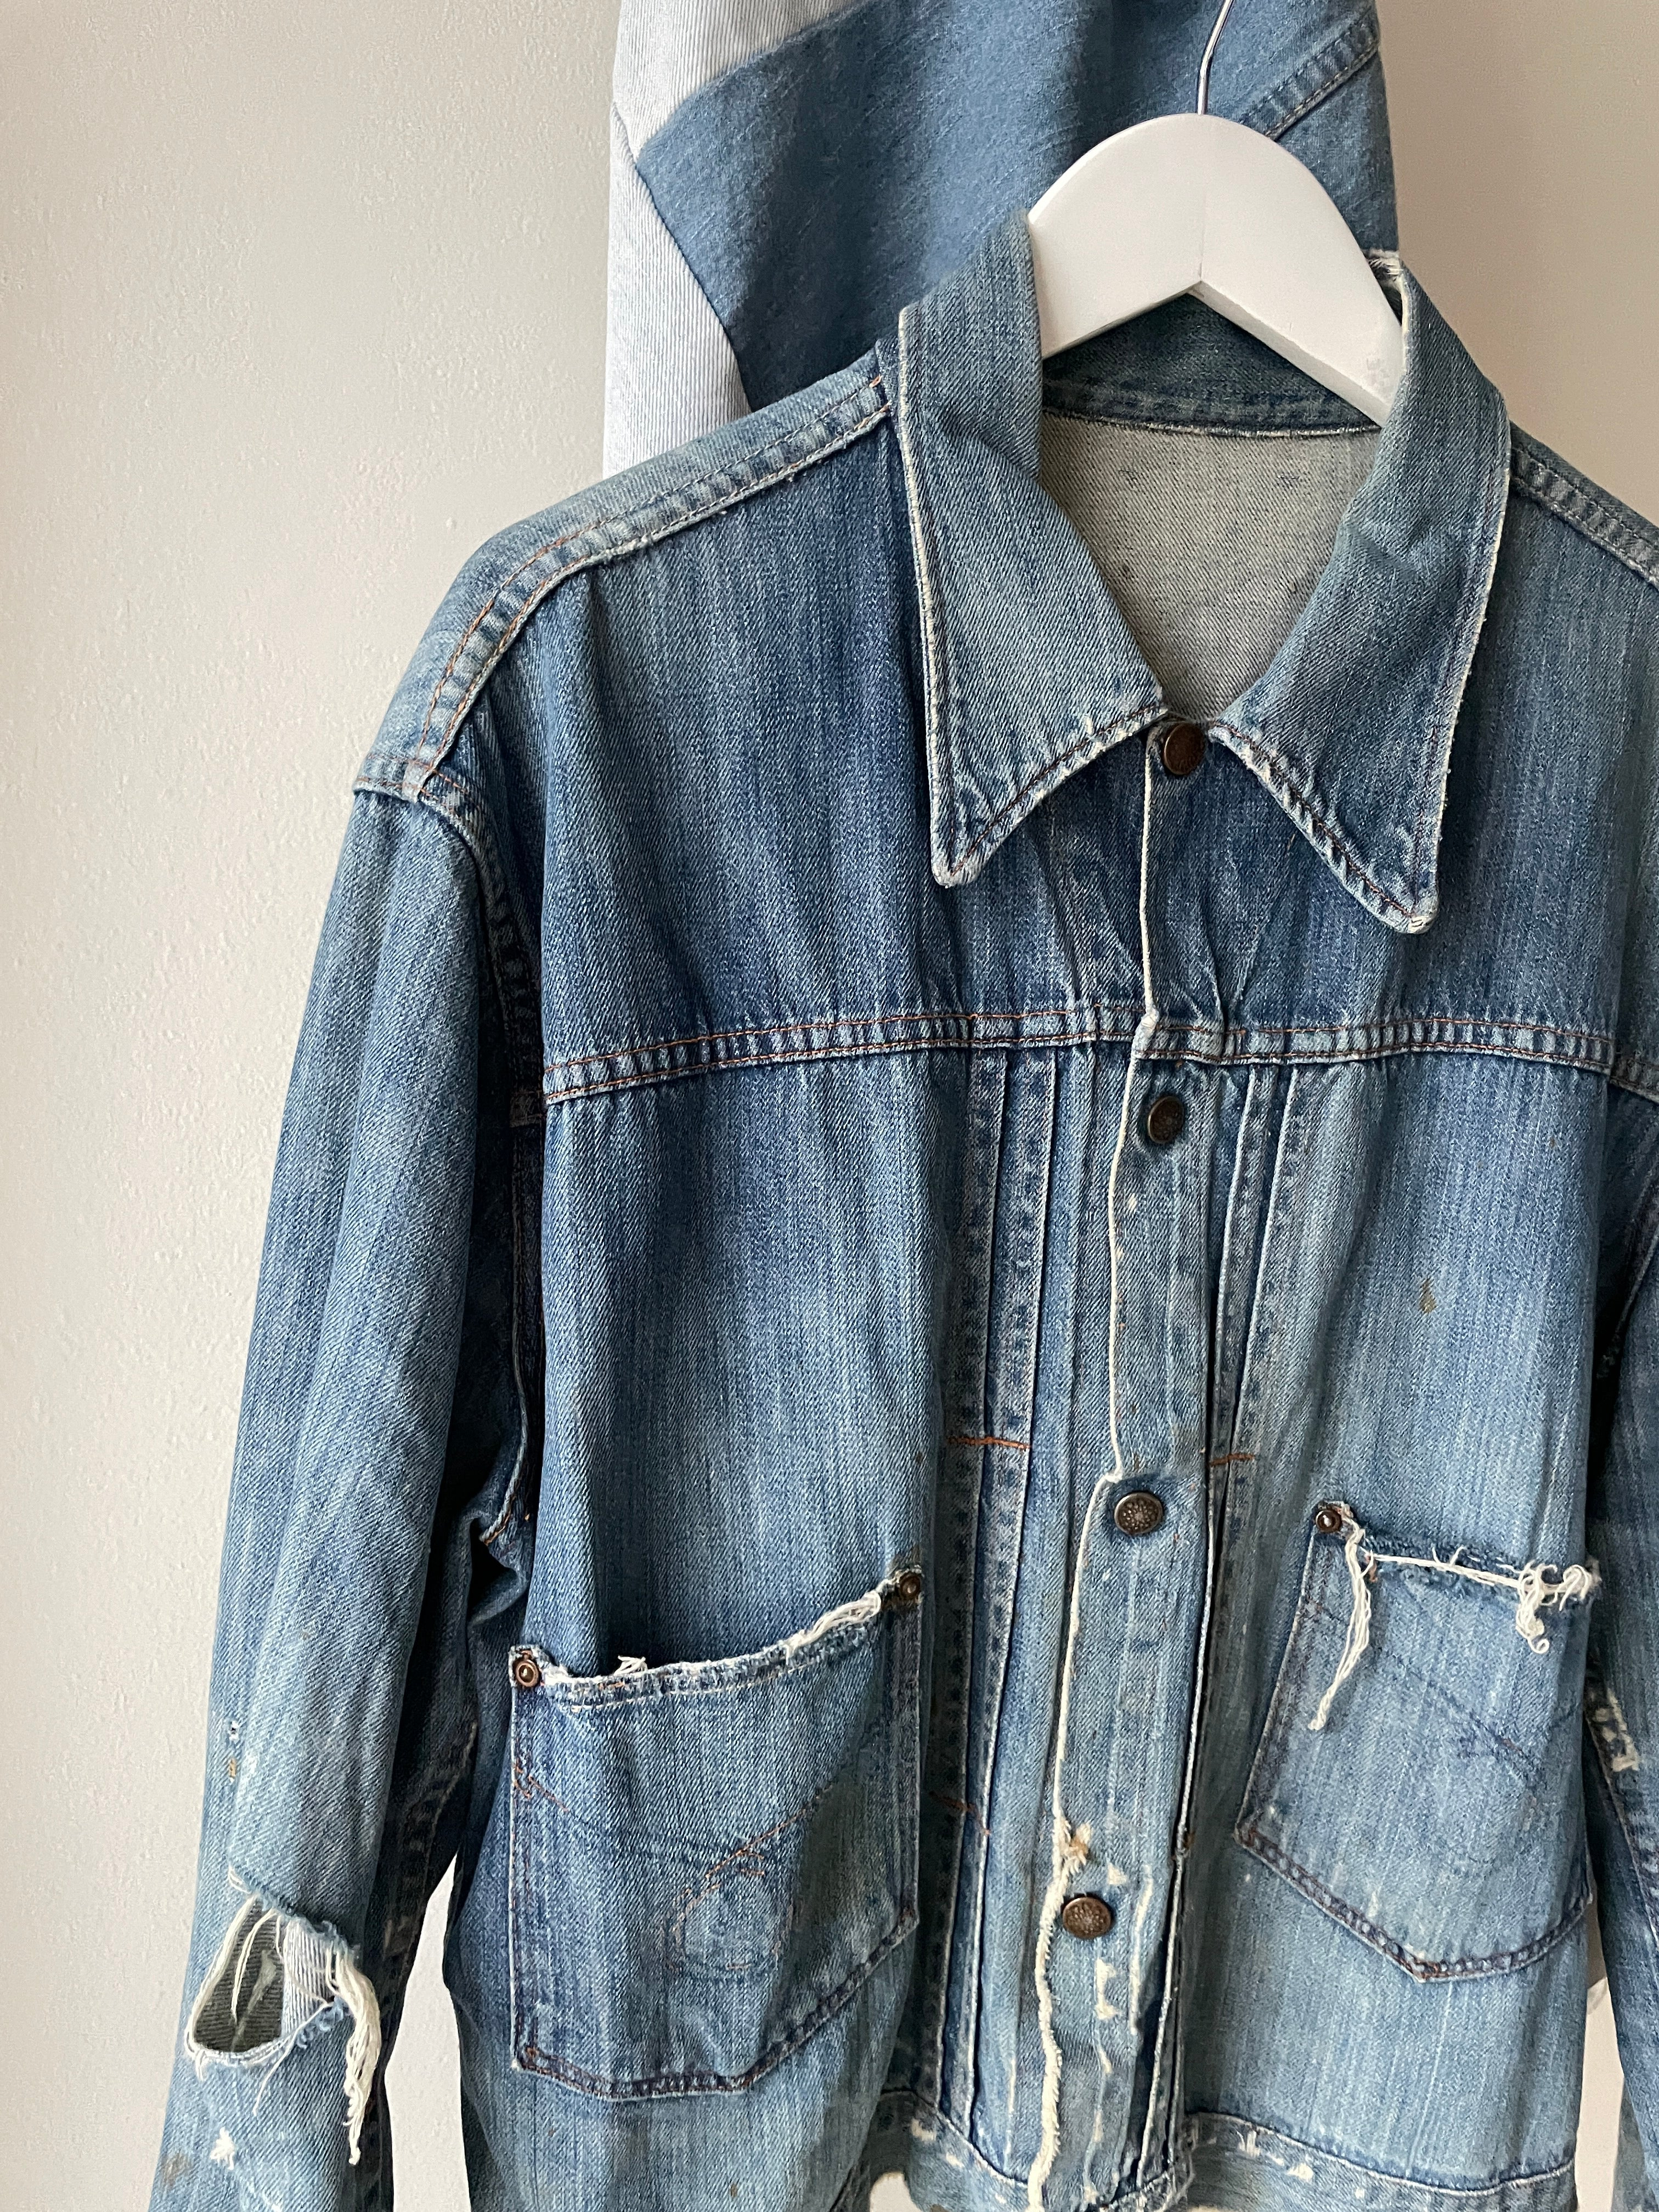 1960's Sears Selvedge Lined Denim Jacket (L)